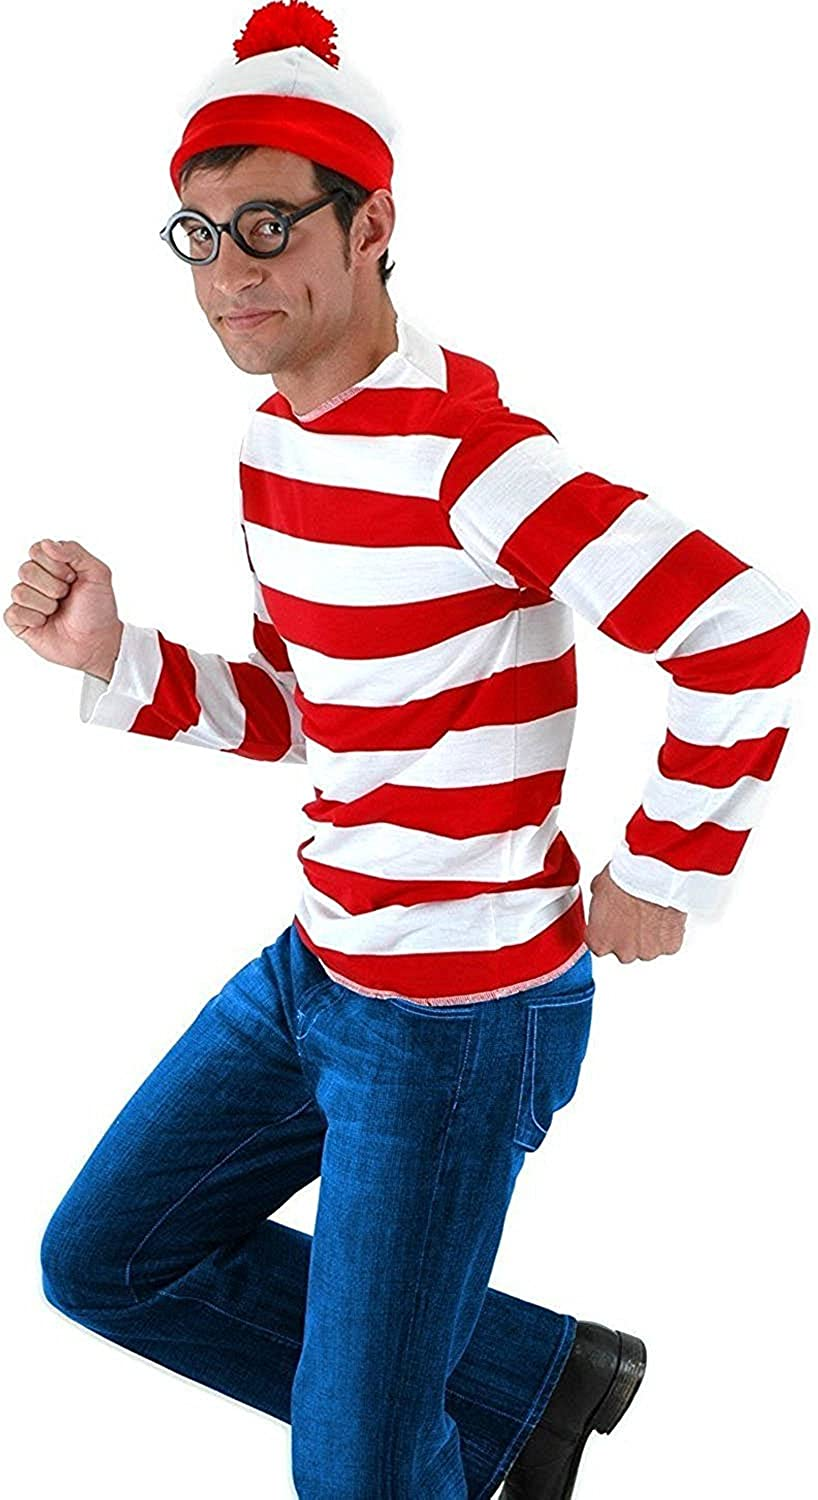 ZHIHONG Halloween Cosplay Ranking TOP13 Shirts Costume White and Red New product Striped